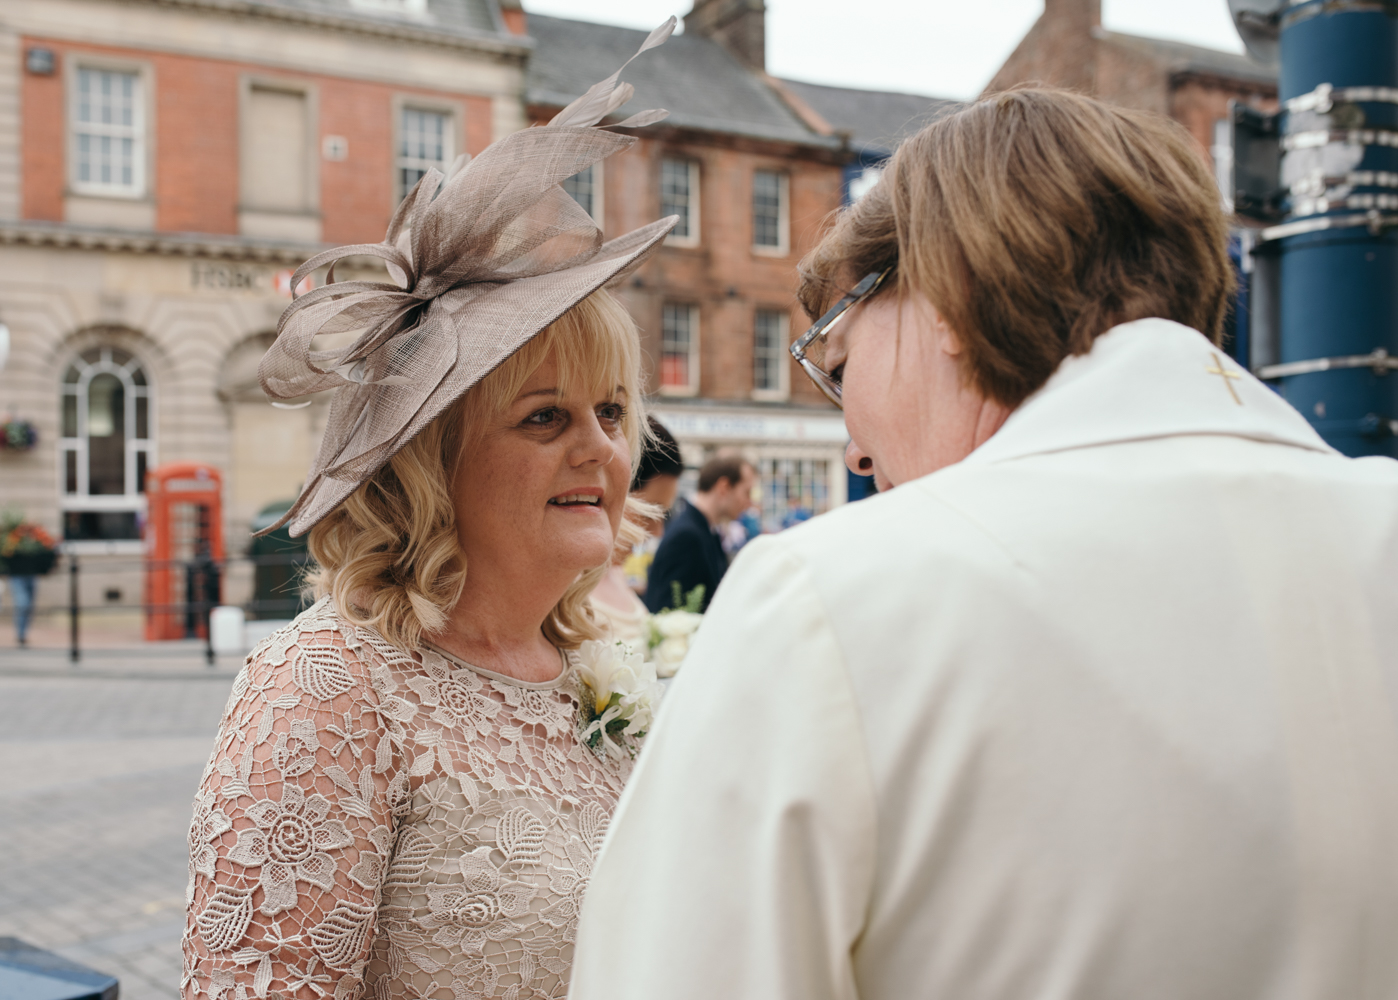 The brides mother chatting to the vicar prior to the wedding ceremony